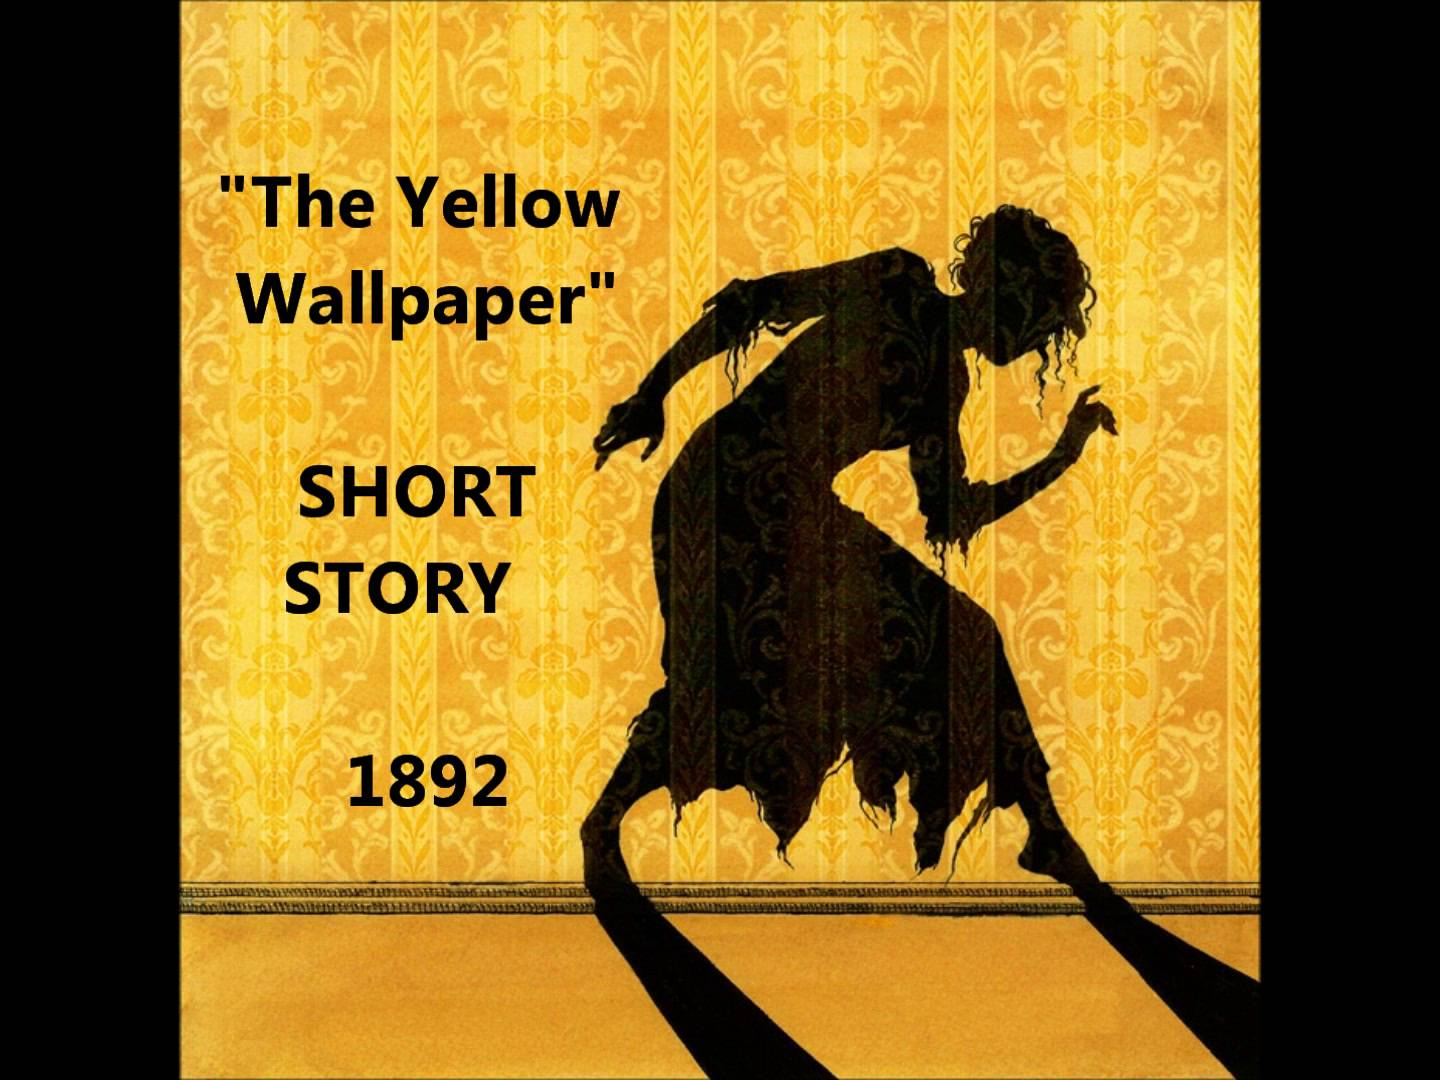 the yellow wallpaper by charlotte p gilman essay Charlotte perkins stetson/ gilman in the yellow wallpaper explores the place of women in a marriage and how this affects their ability to negotiate their way by maintaining some form of independence as well as the impact of the power imbalance on the children.